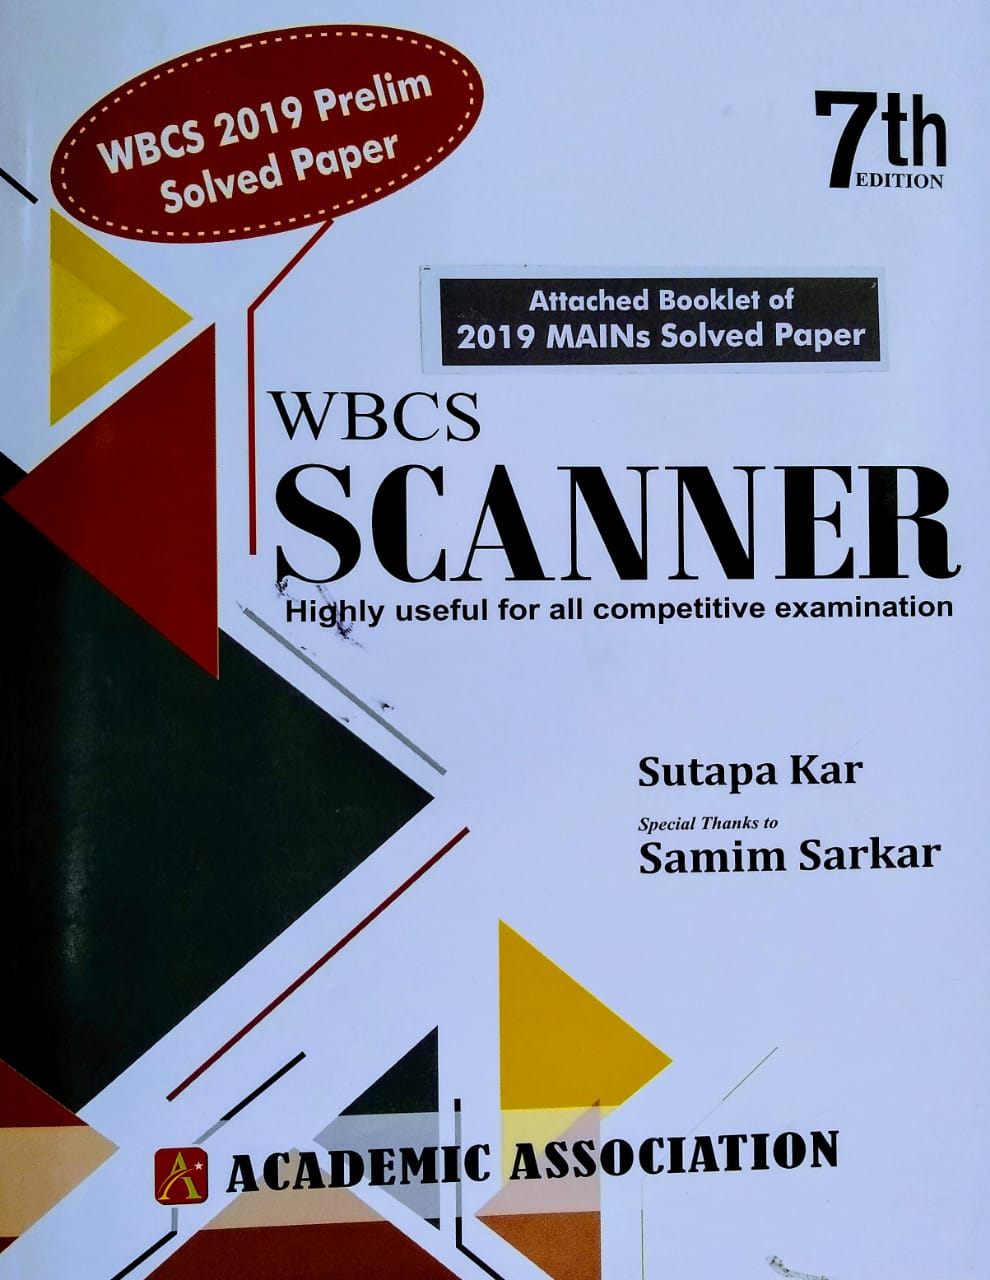 WBCS SCANNER Academic Association edition 7 (UPDATED)